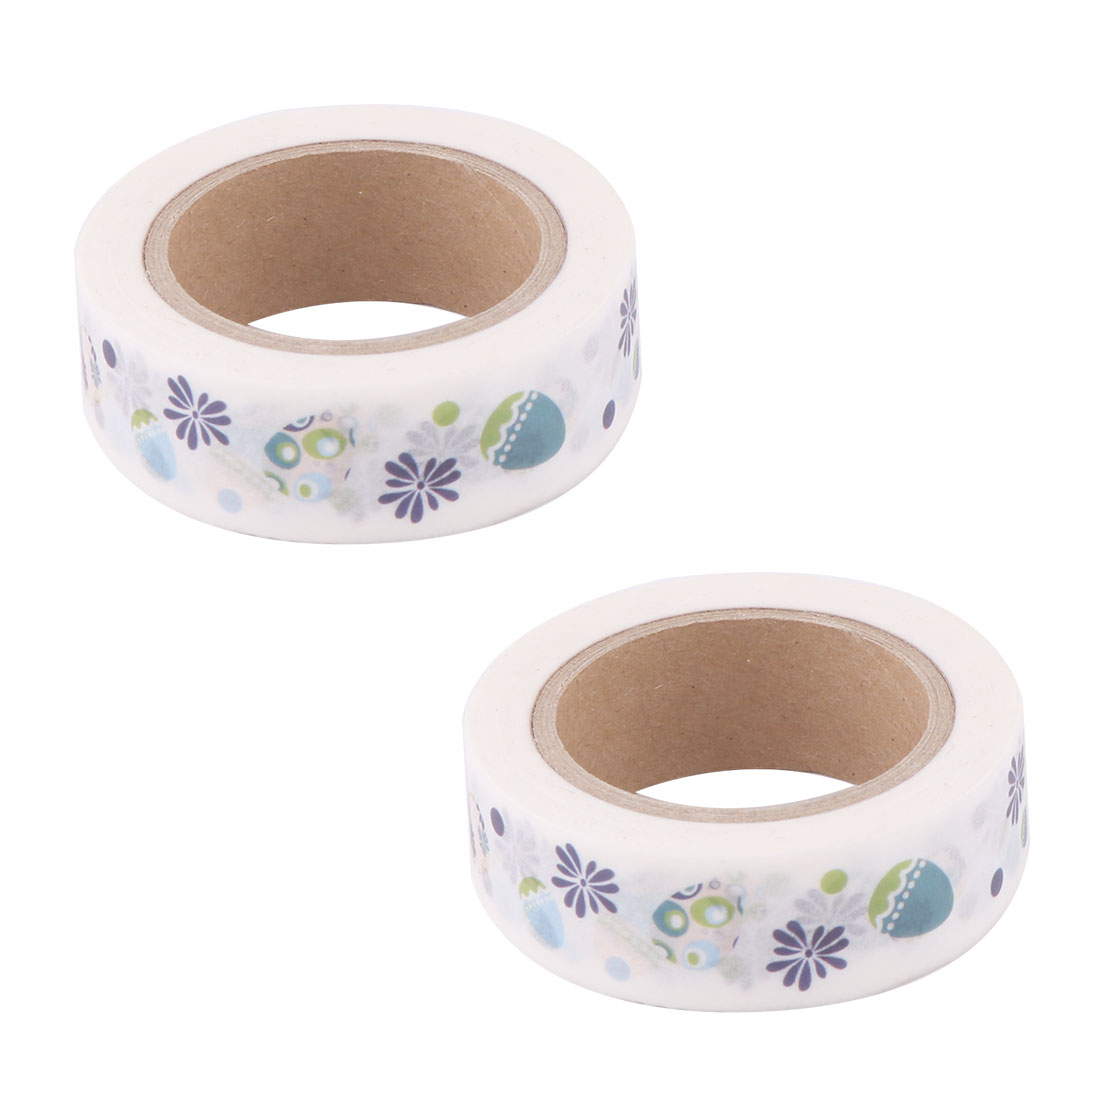 Washi Paper Flower Egg Print Notebook Sticky Label Adhesive Tape Roll 1.5cm x 10M 2pcs